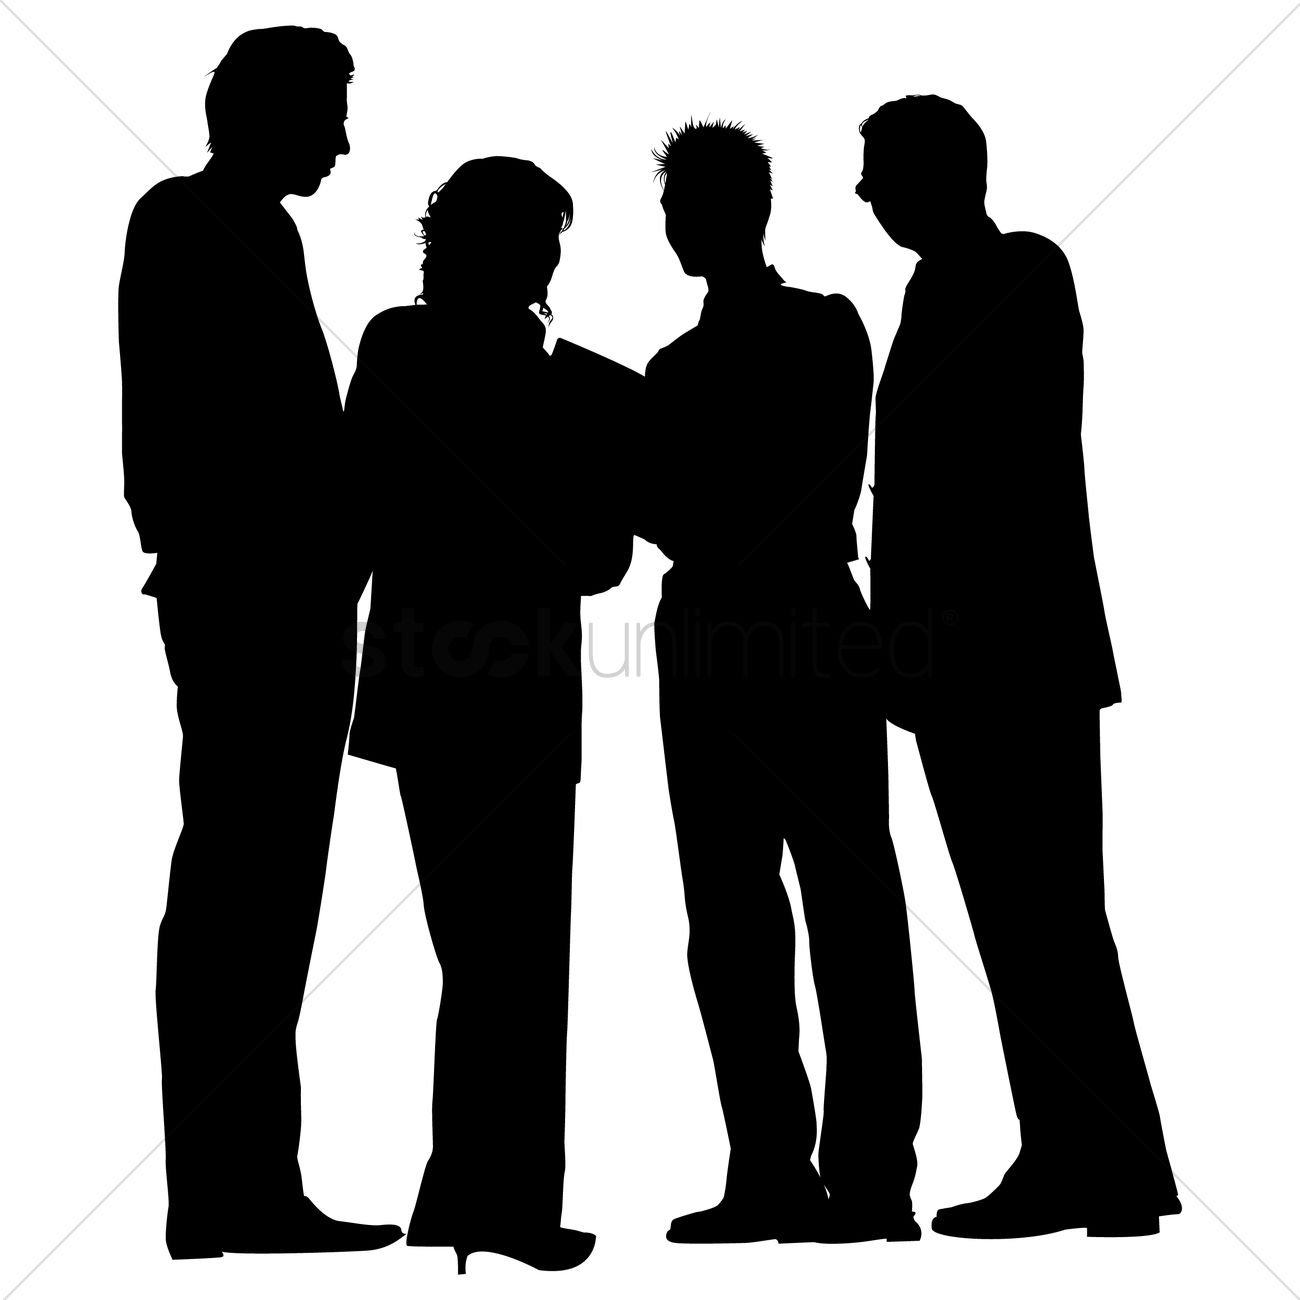 1300x1300 Group Of Business People Standing Silhouette Vector Image